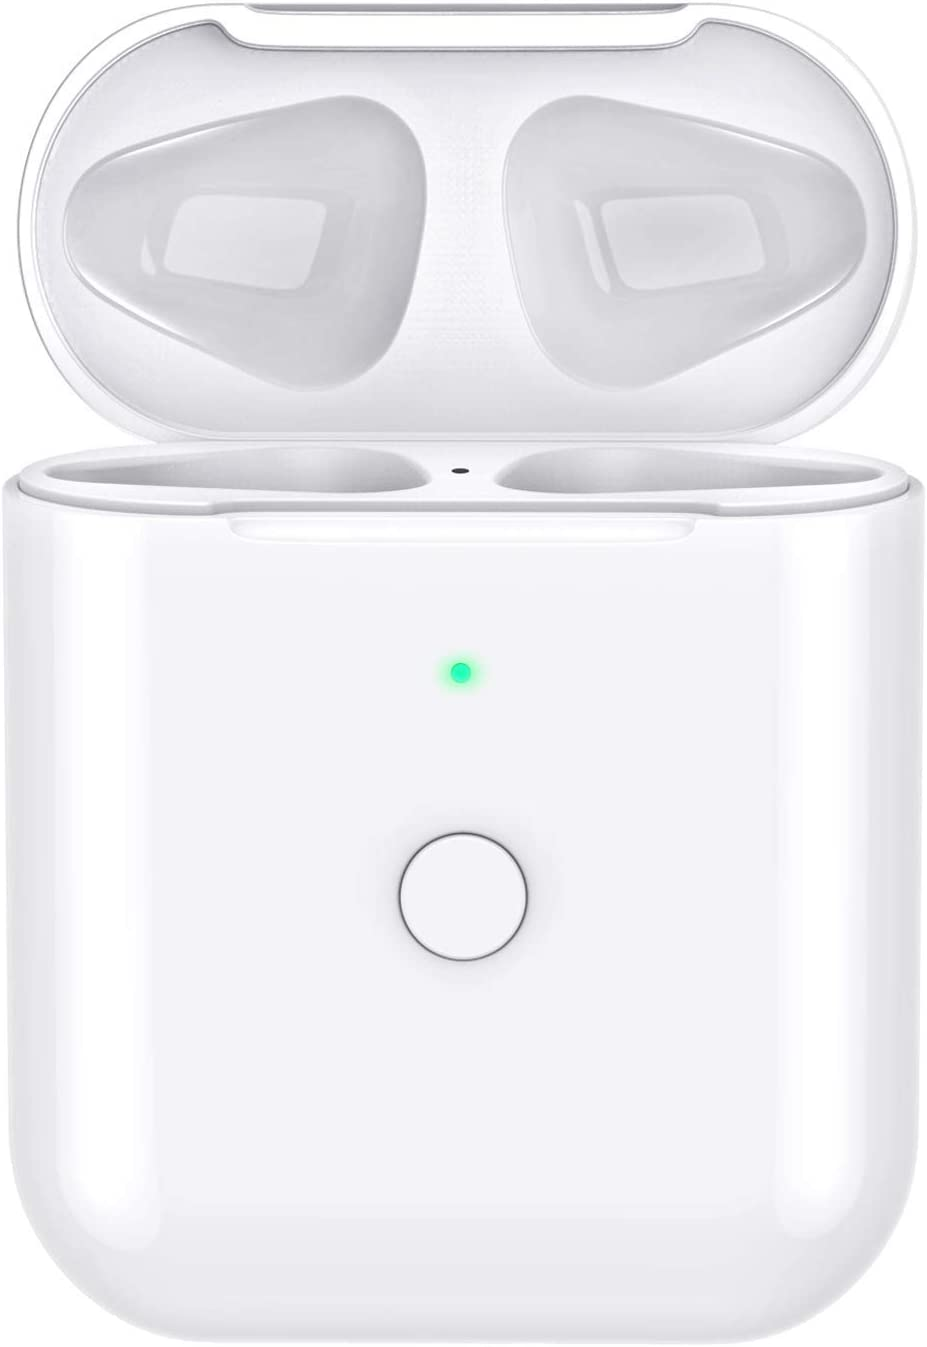 Wireless Airpods Charging Case Replacement Compatiple with for Airpods 2 1, Airpods Charger Case with Bluetooth Pairing Sync Button